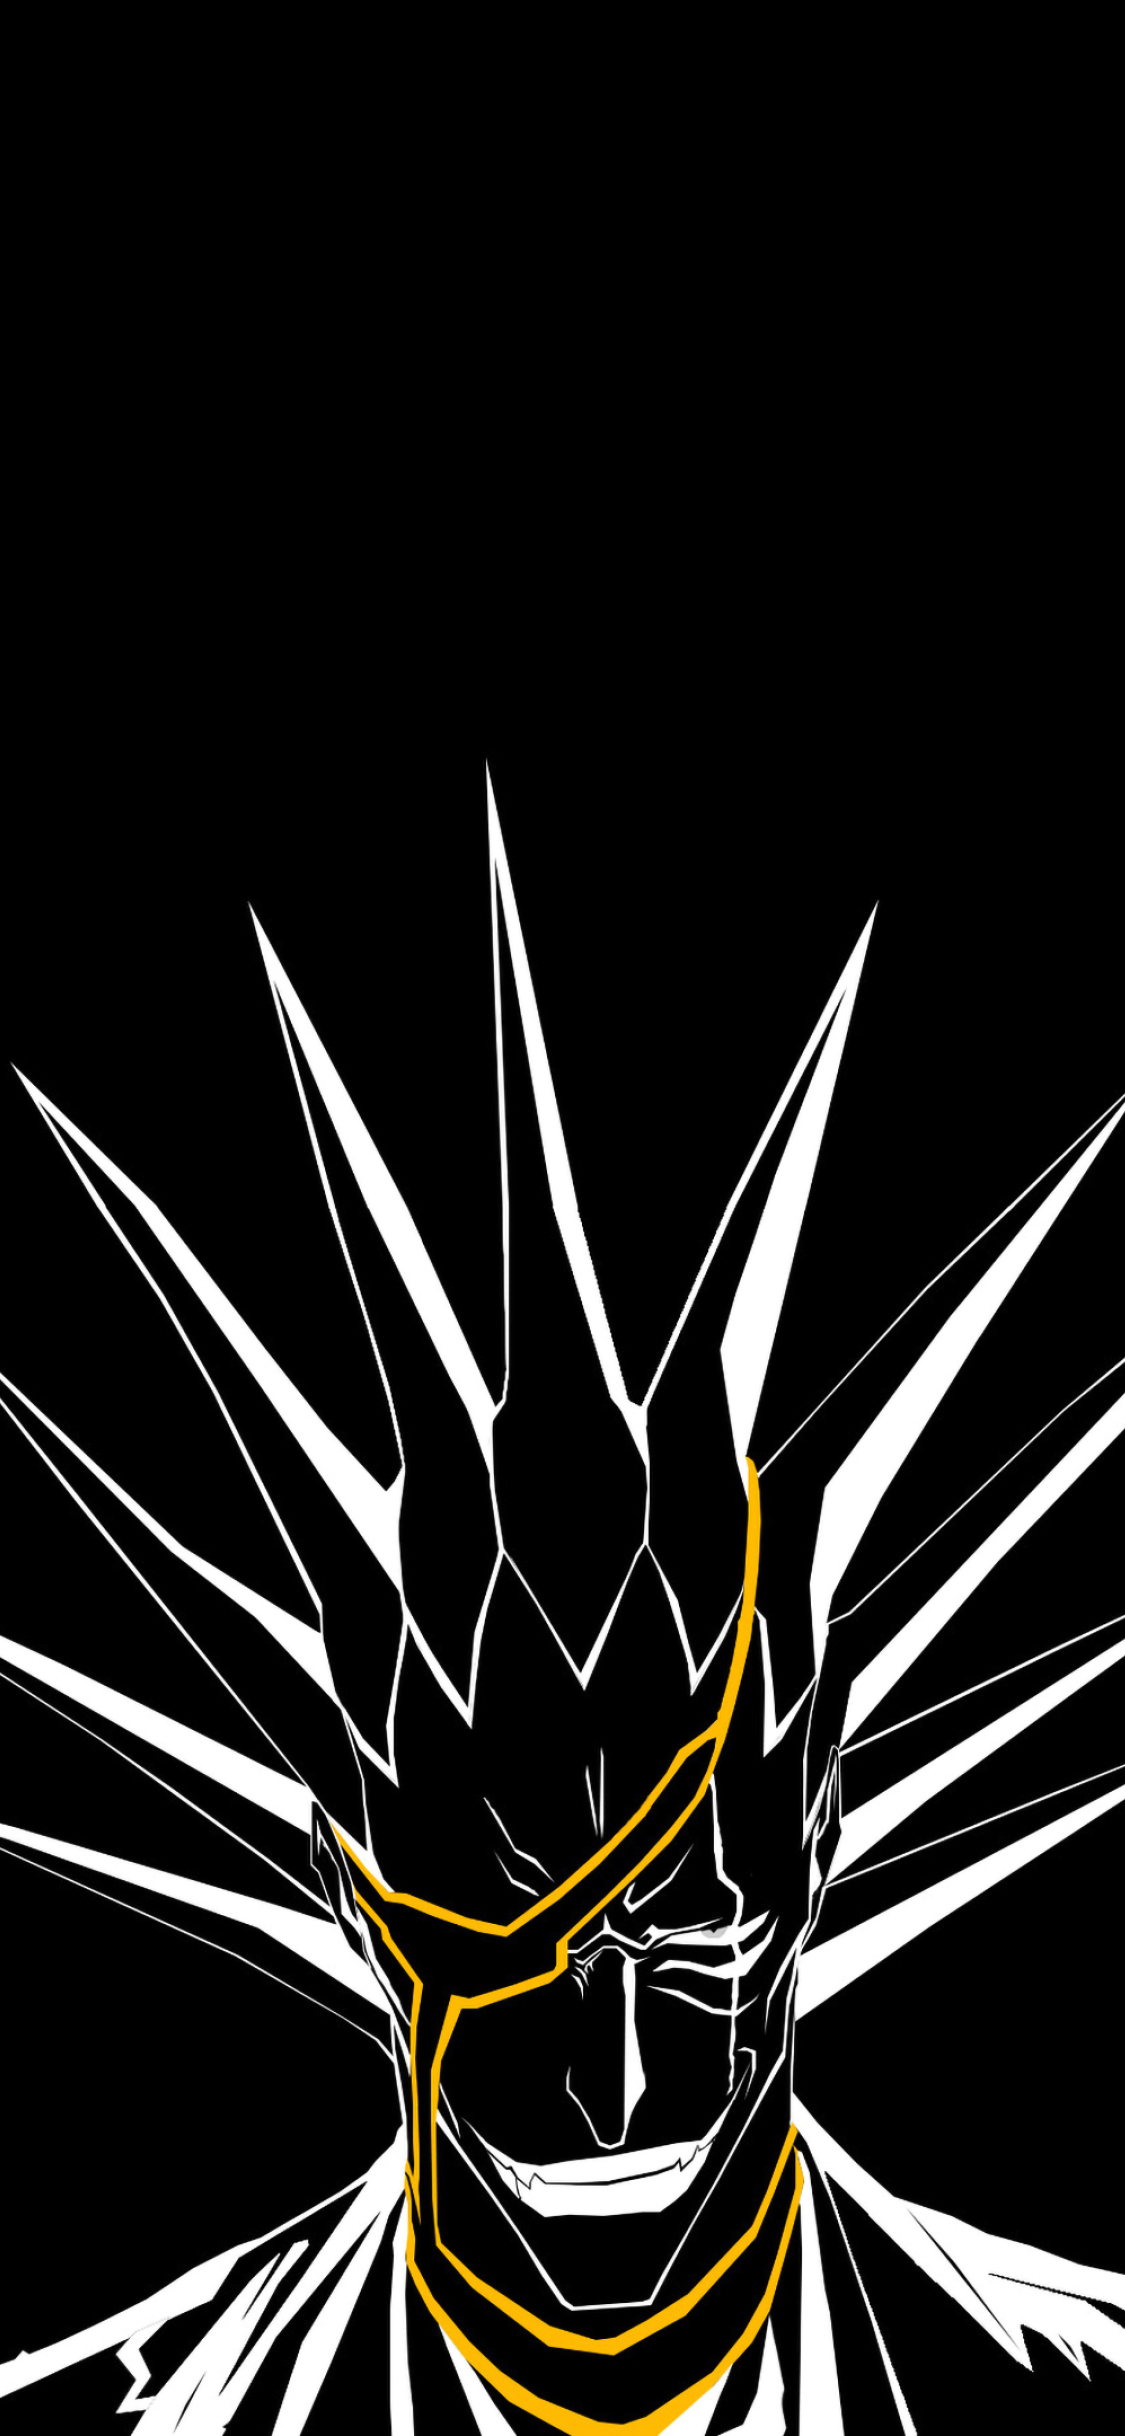 1125x2436 Kenpachi Zaraki 4k Anime Iphone Xs Iphone 10 Iphone X Wallpaper Hd Anime 4k Wallpapers Images Photos And Background